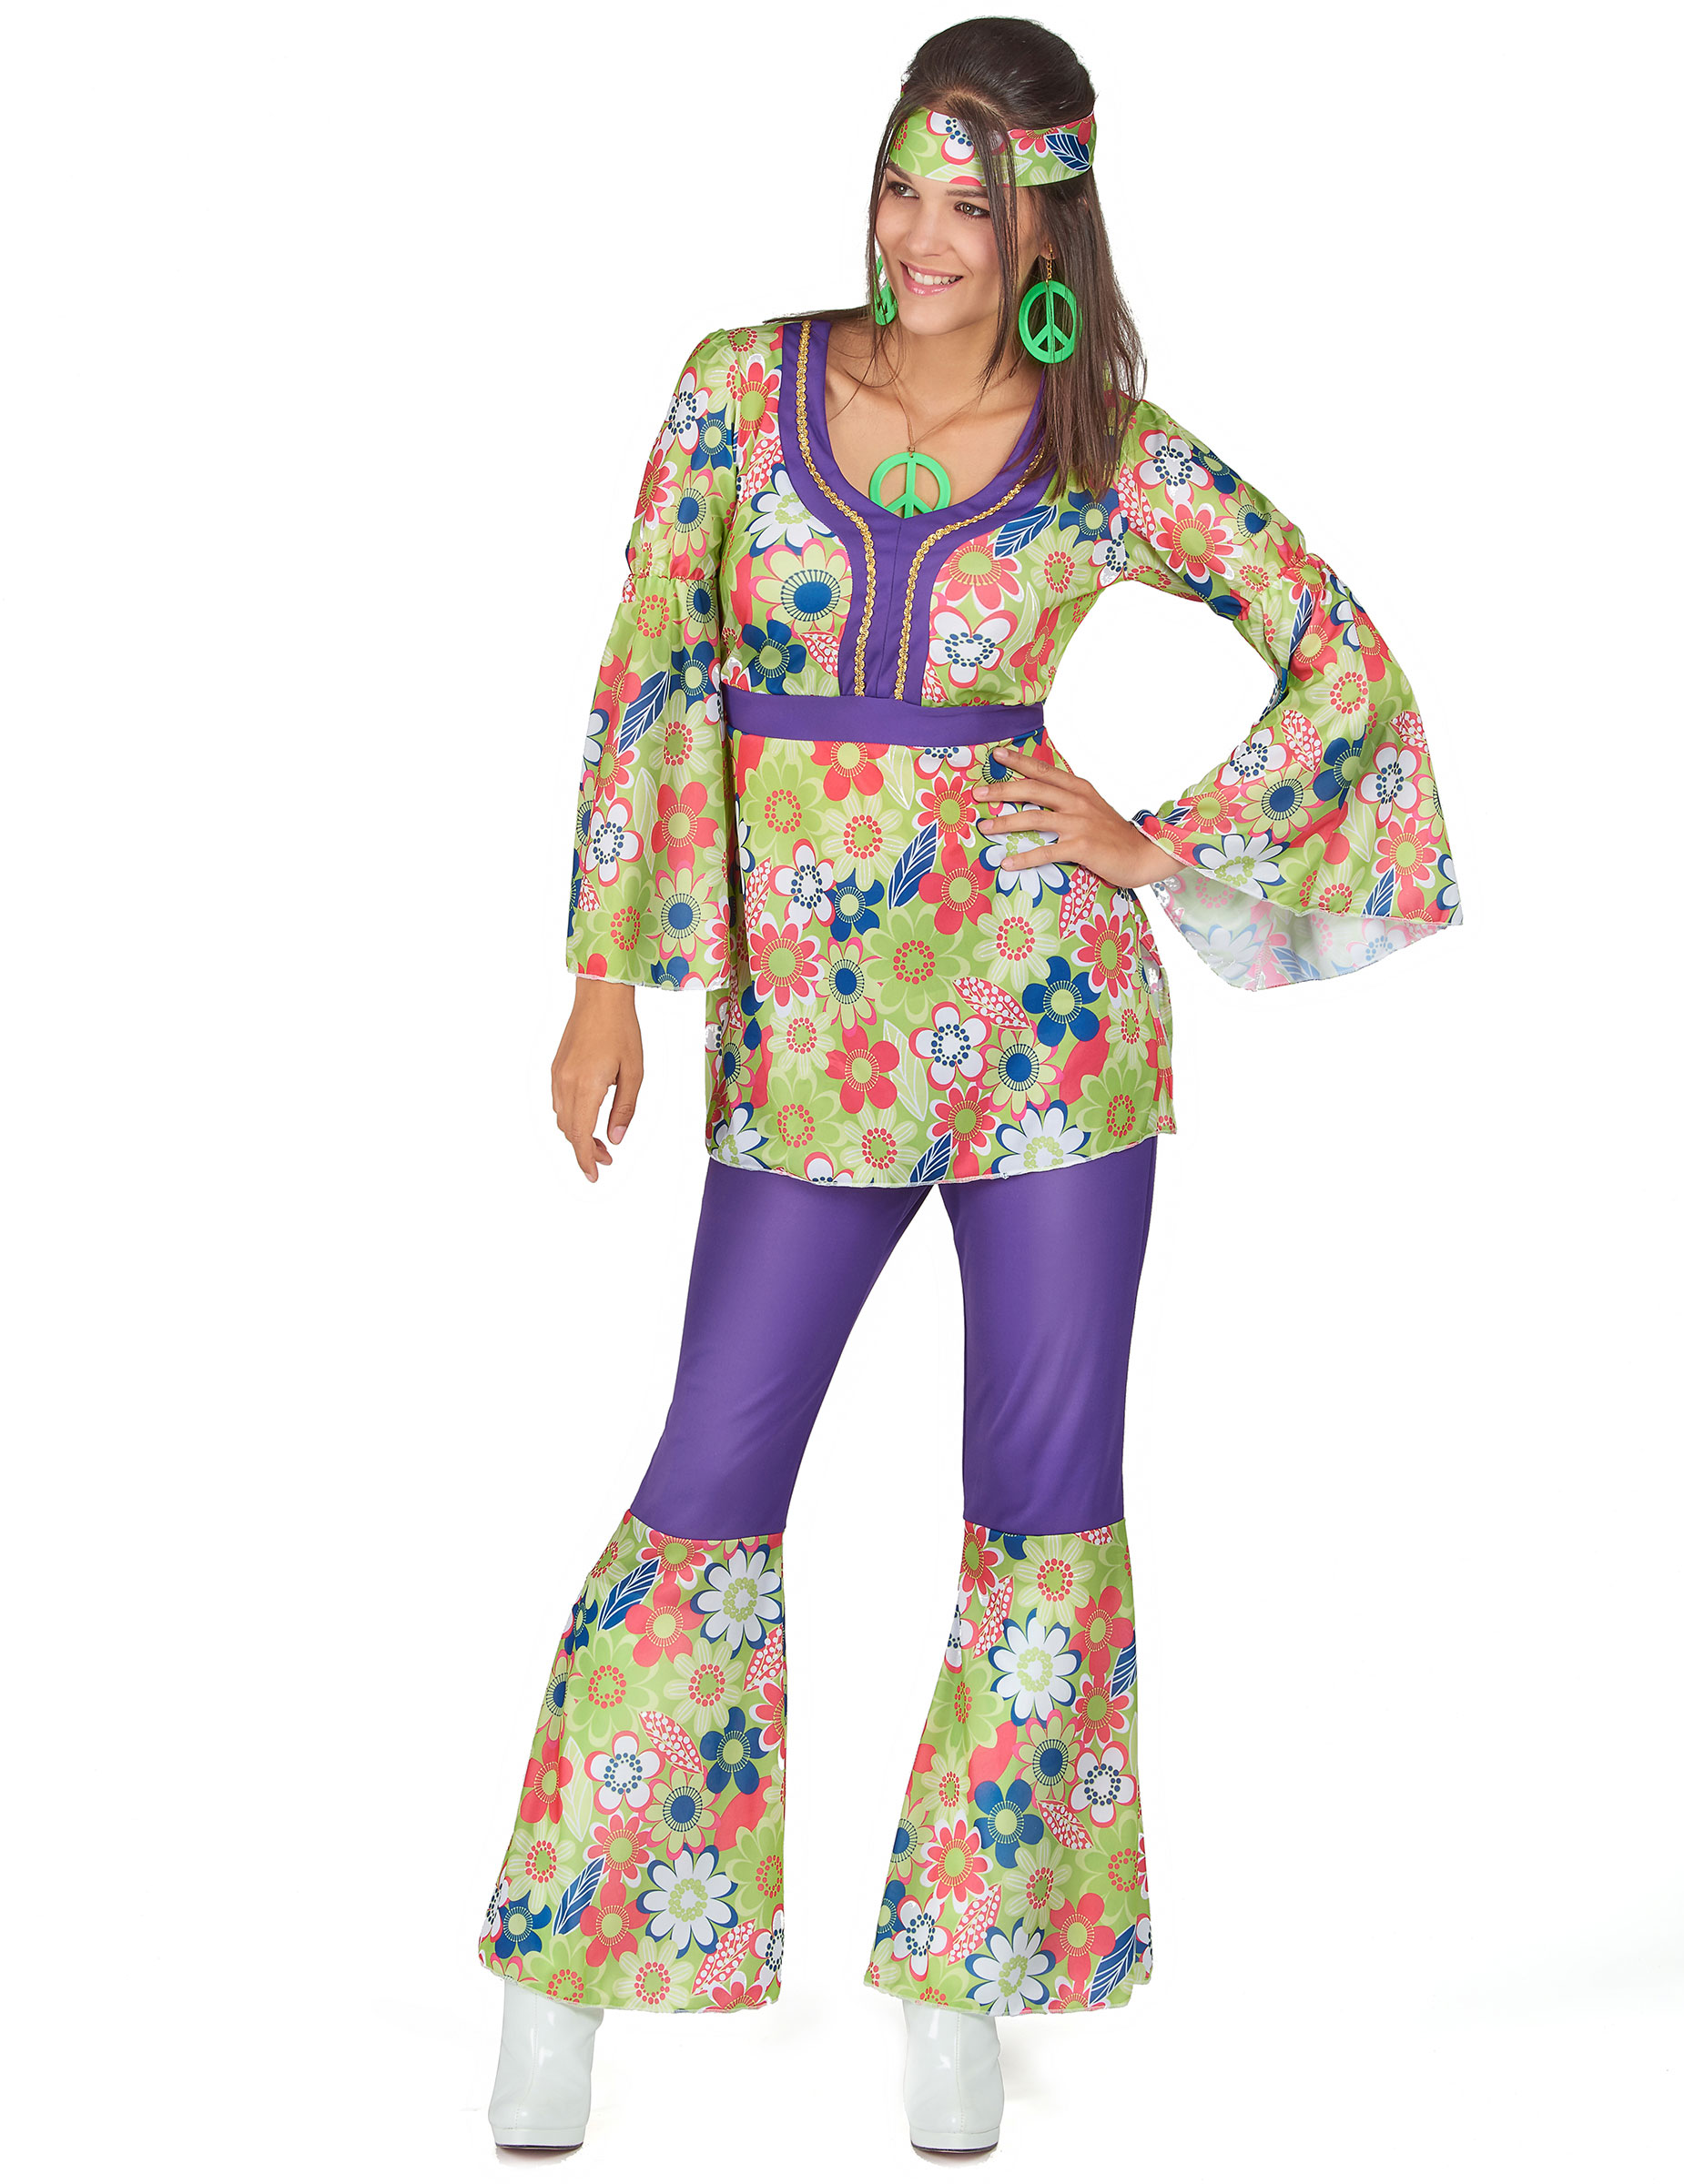 Hippy costume for women